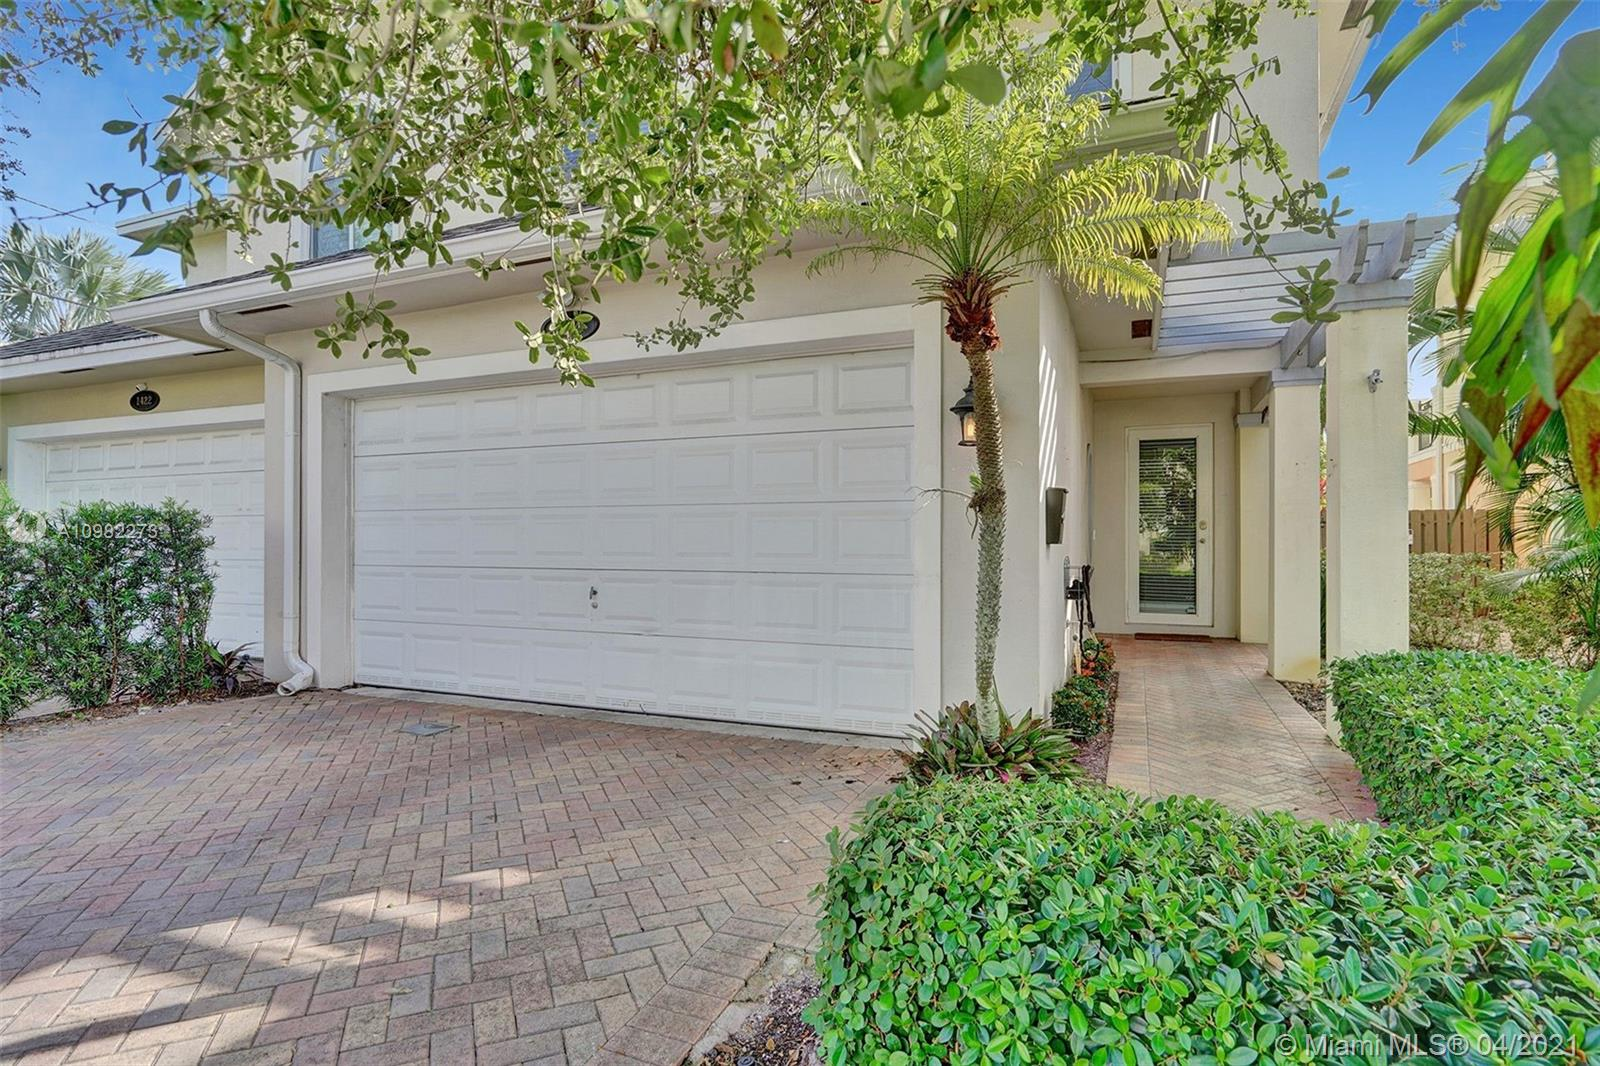 Gorgeous townhome that is not governed by HOA. Modern kitchen and granite breakfast bar open to great room, Entire second floor and winding staircase professionally upgraded Mahogany hardwood with beautiful wrought iron railings. His & Her's walk-in closets in luxurious master suite with spacious sitting area, spa-like bath and balcony overlooking Zen backyard, tranquil fountain and trouble free artificial turf. Half-bath on 1st floor. All Impact Windows & Doors, new AC Property is in process of reroof and remediation for garage so will have a new roof and refreshed garage. Sale of property will require a hold harmless and mold addendum from seller. Garage in process and will be new condition with all drywall and insulation replaced by remediation.